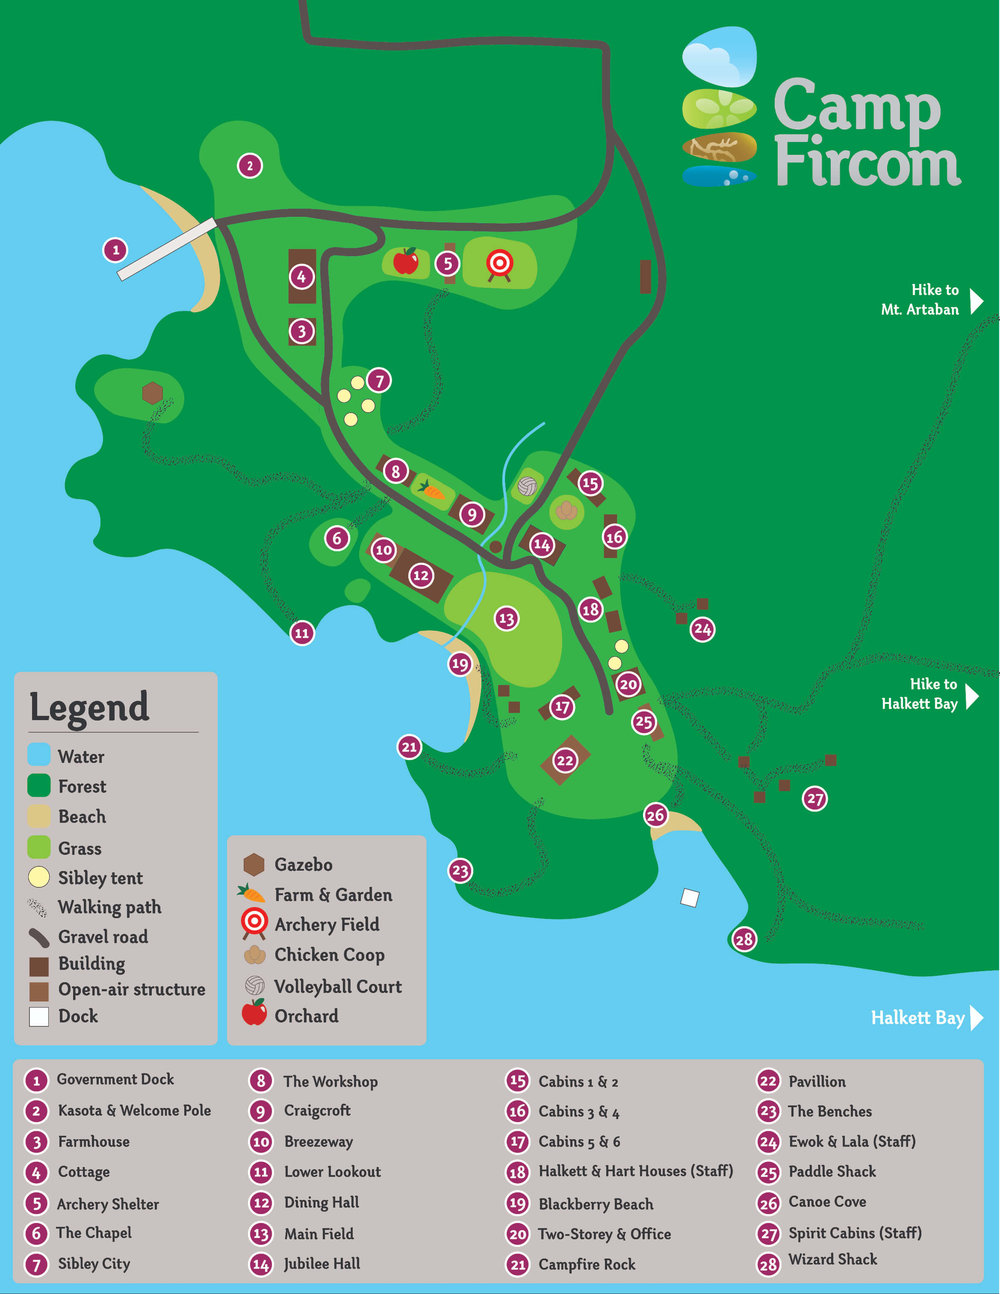 Camp Fircom is situated on the south-east corner of Gambier Island